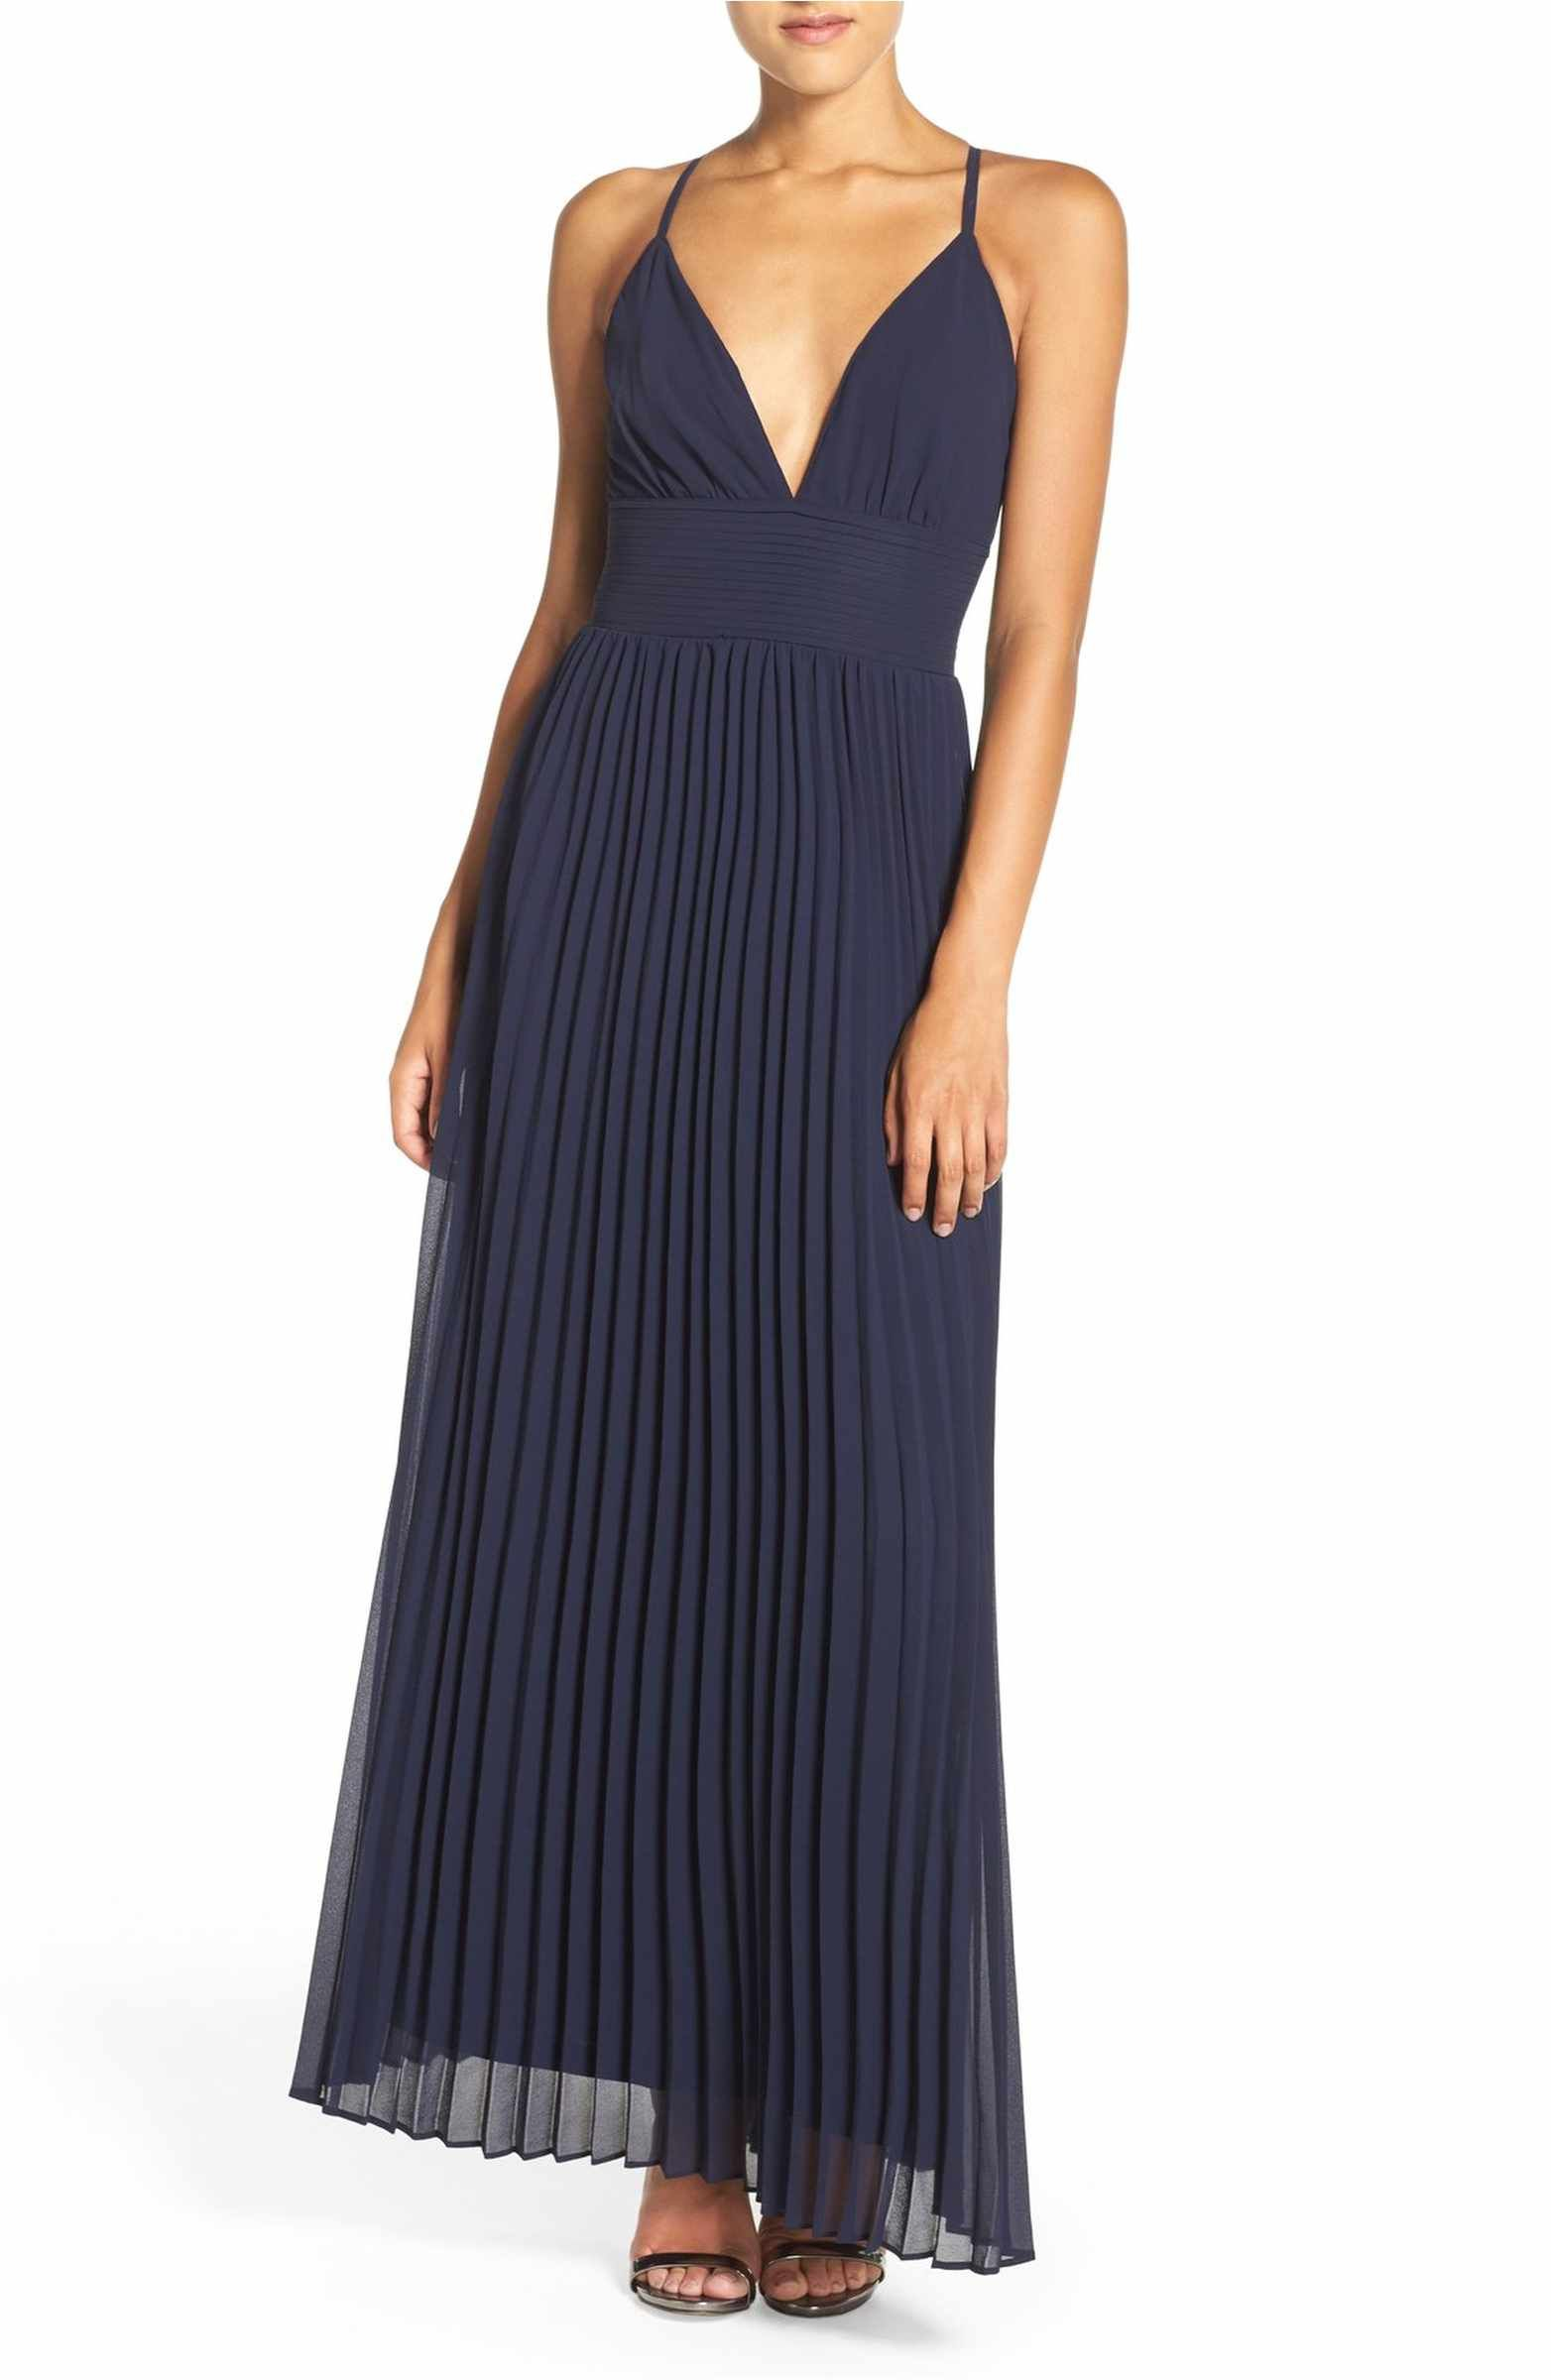 Lulus wedding guest dress  Plunging VNeck Pleat Georgette Gown  Gowns and Fashion